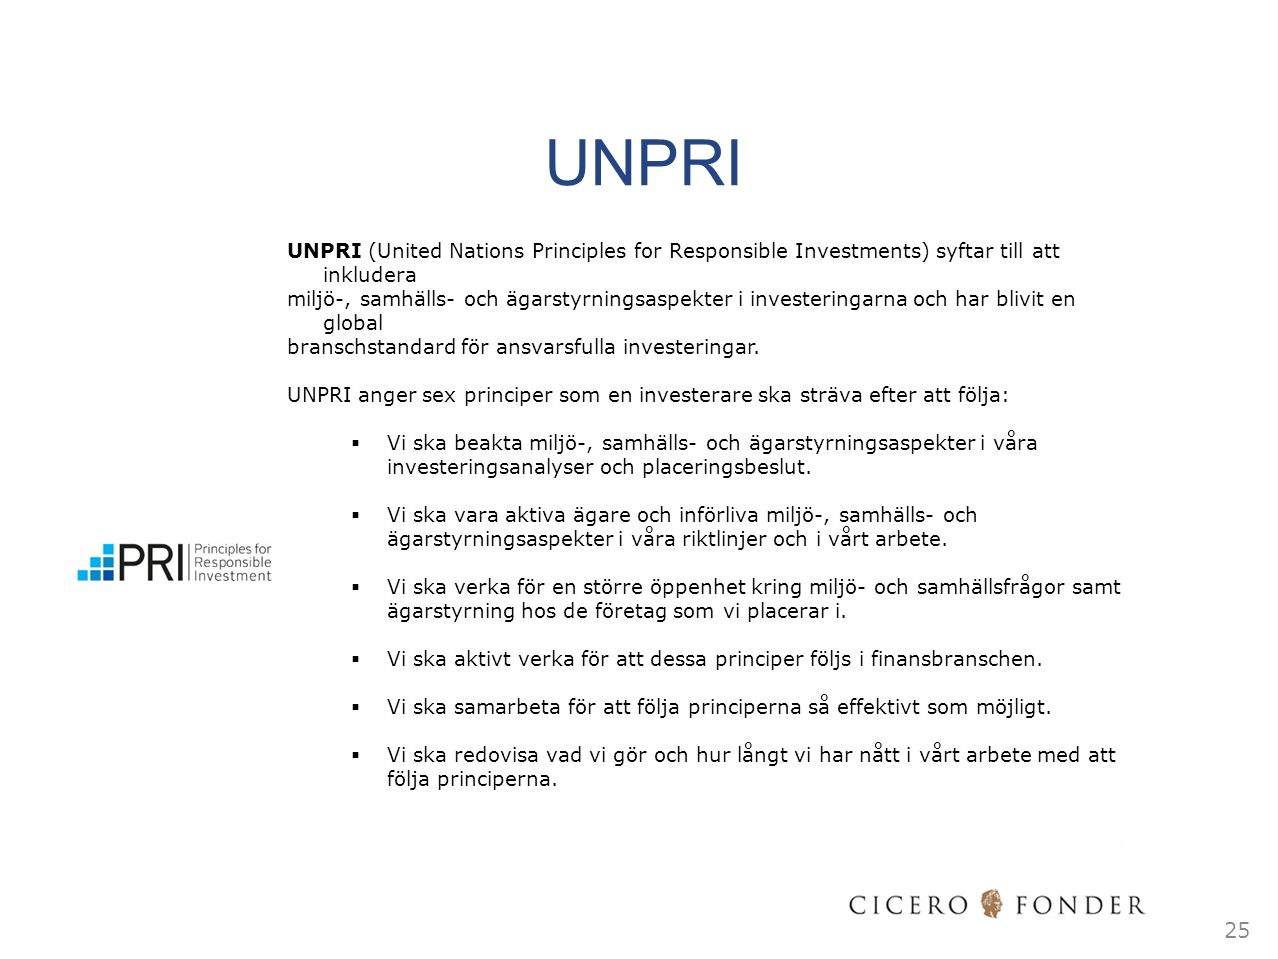 UNPRI UNPRI (United Nations Principles for Responsible Investments) syftar till att inkludera.